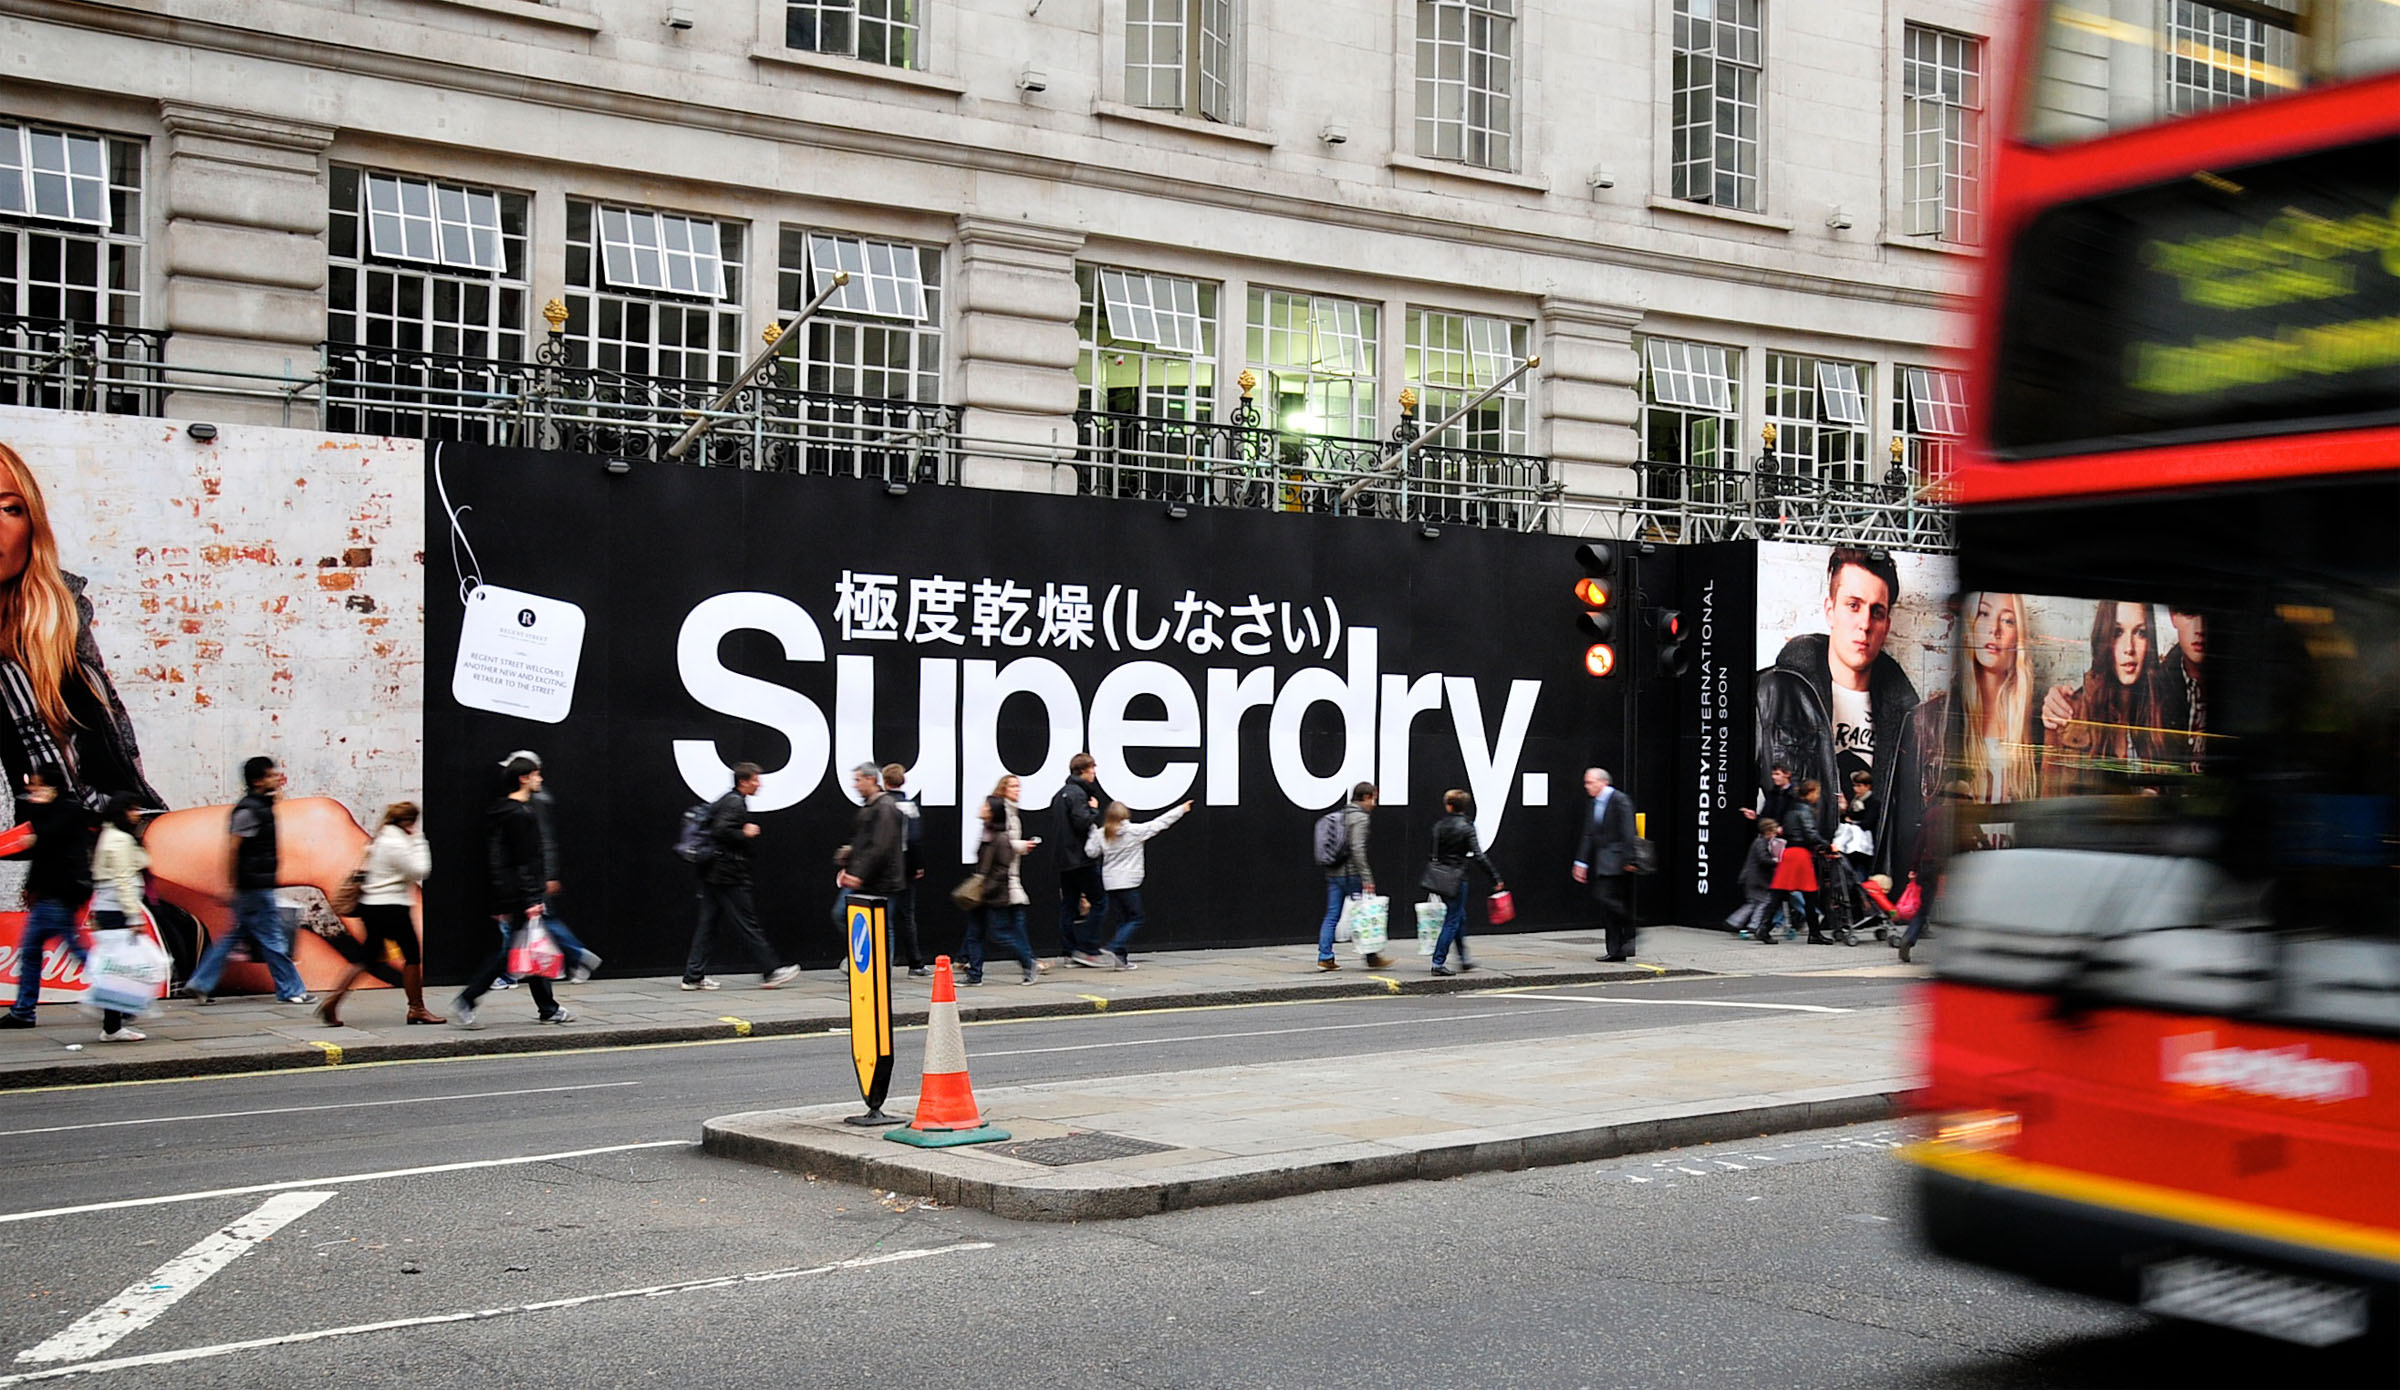 Disruption hoarding for Superdry in London's Regent Street